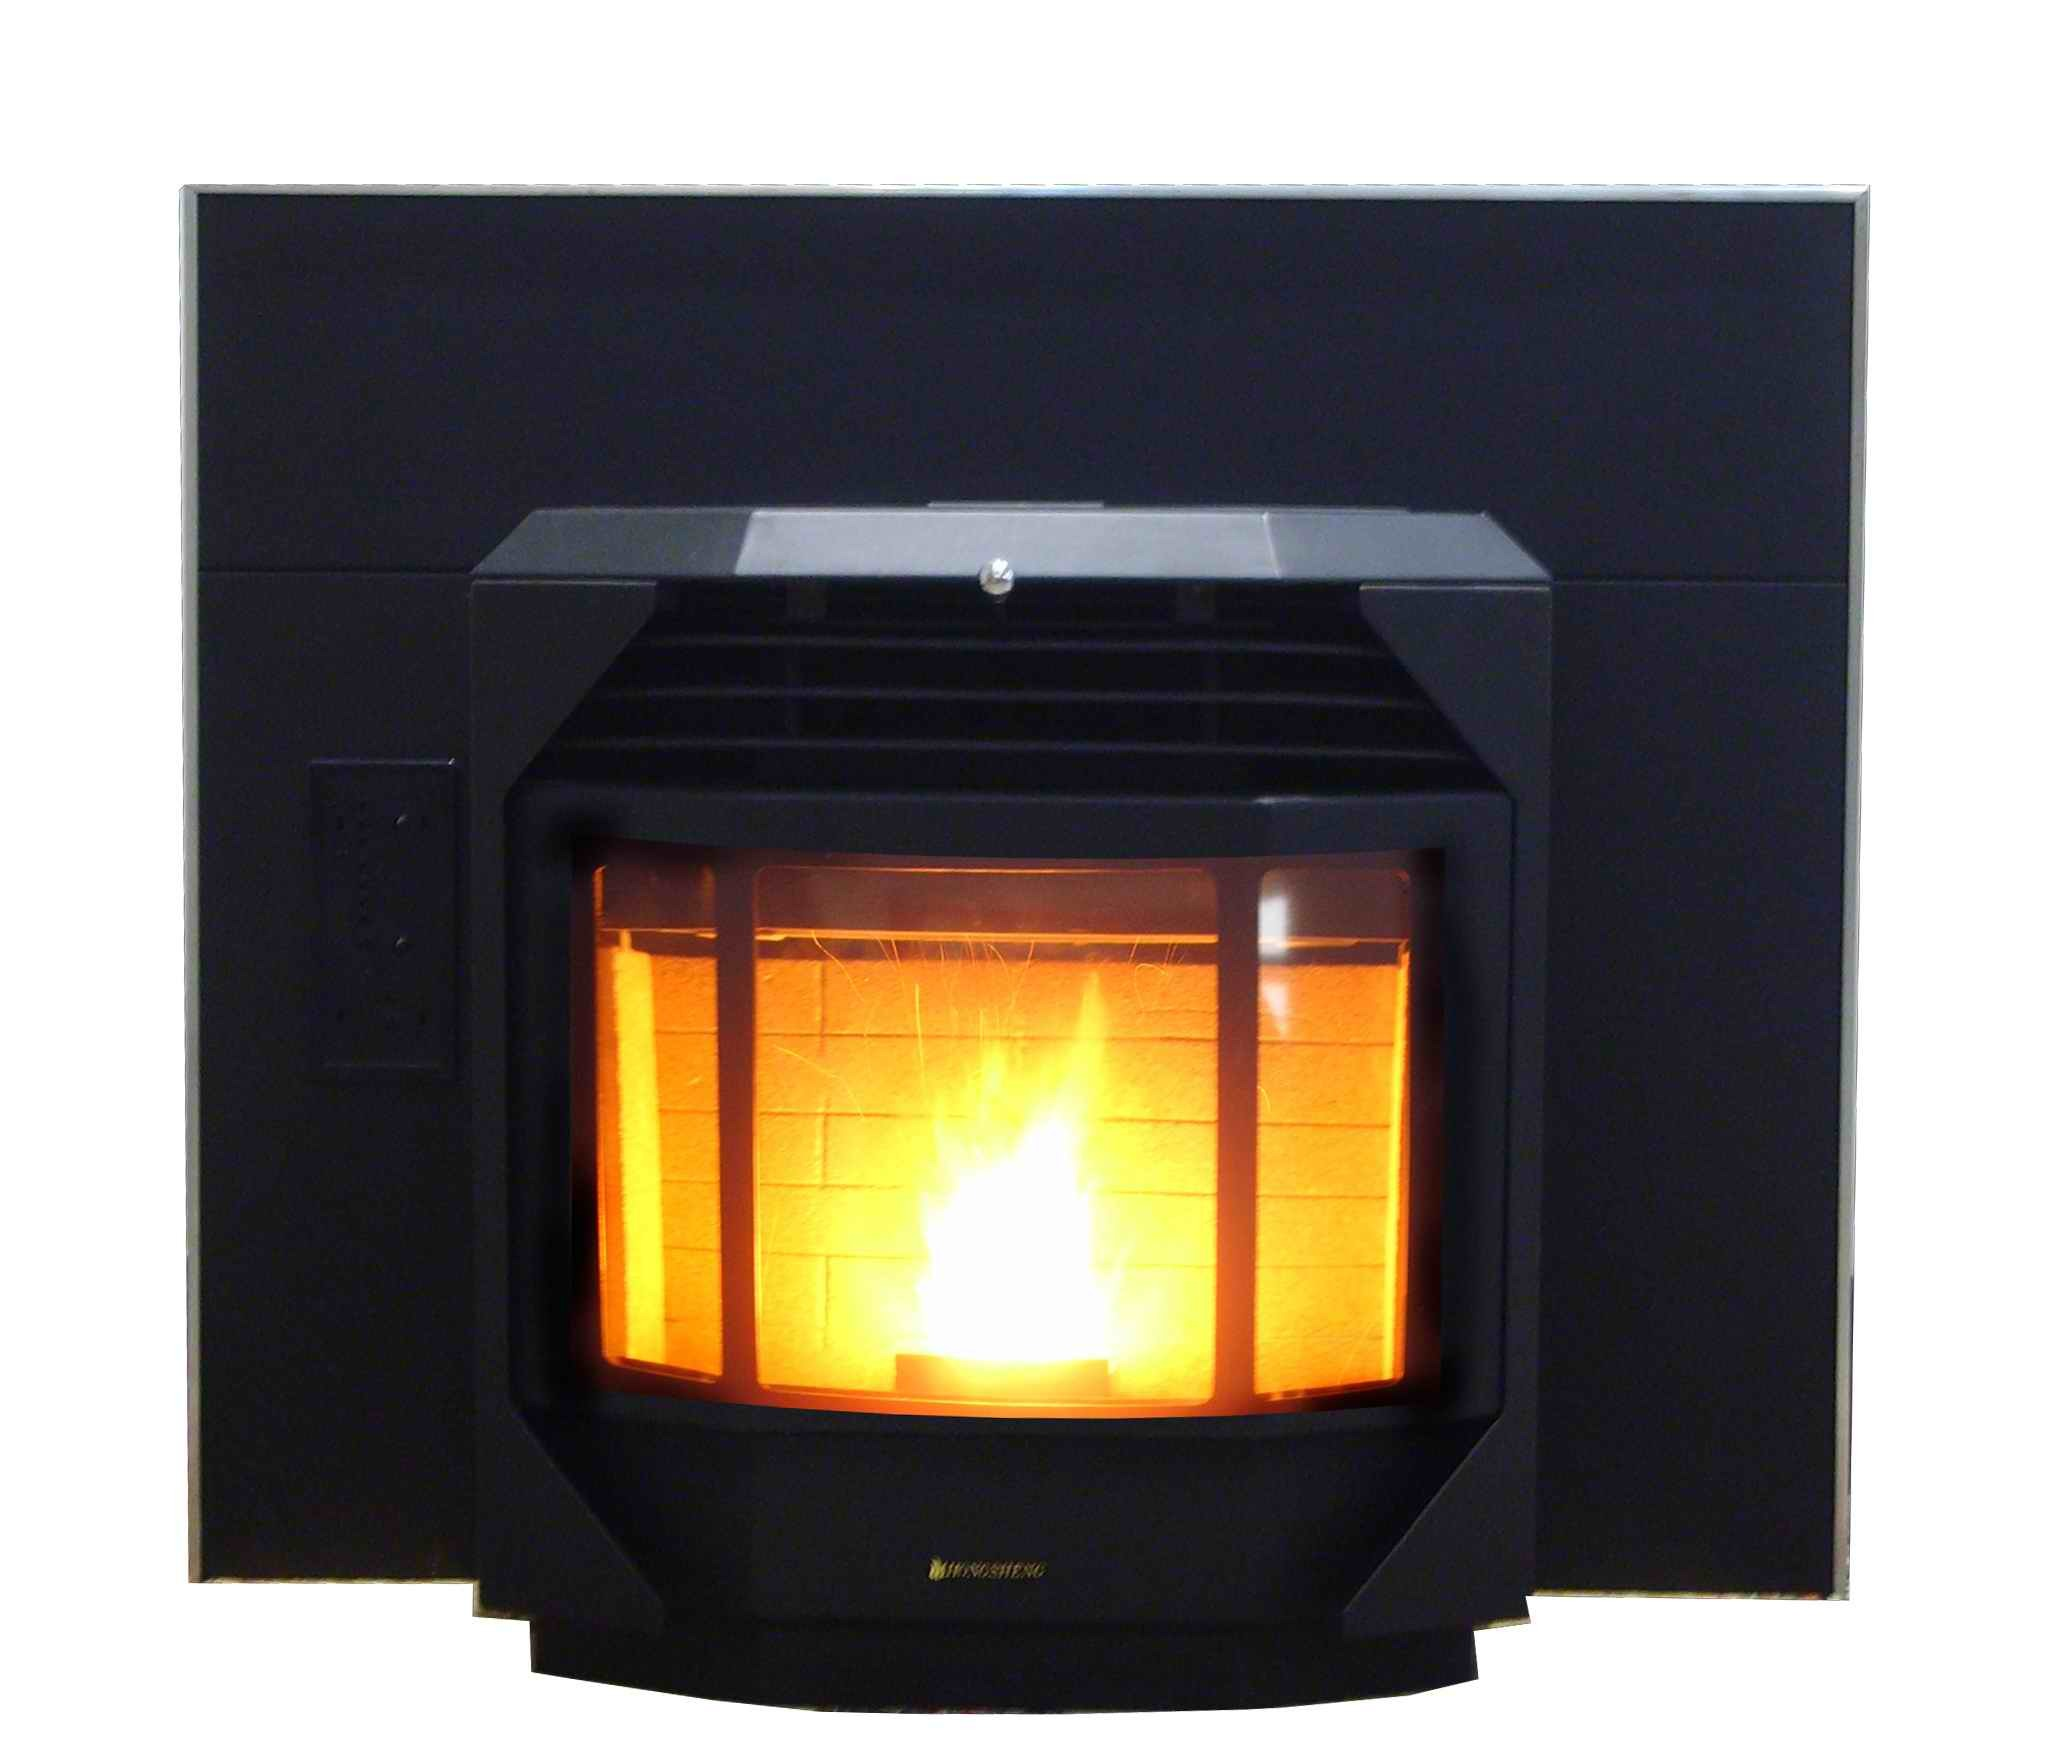 China Insert Wood Pellet Stove Hp20i China Pellet Stove Wood Pellet Stove